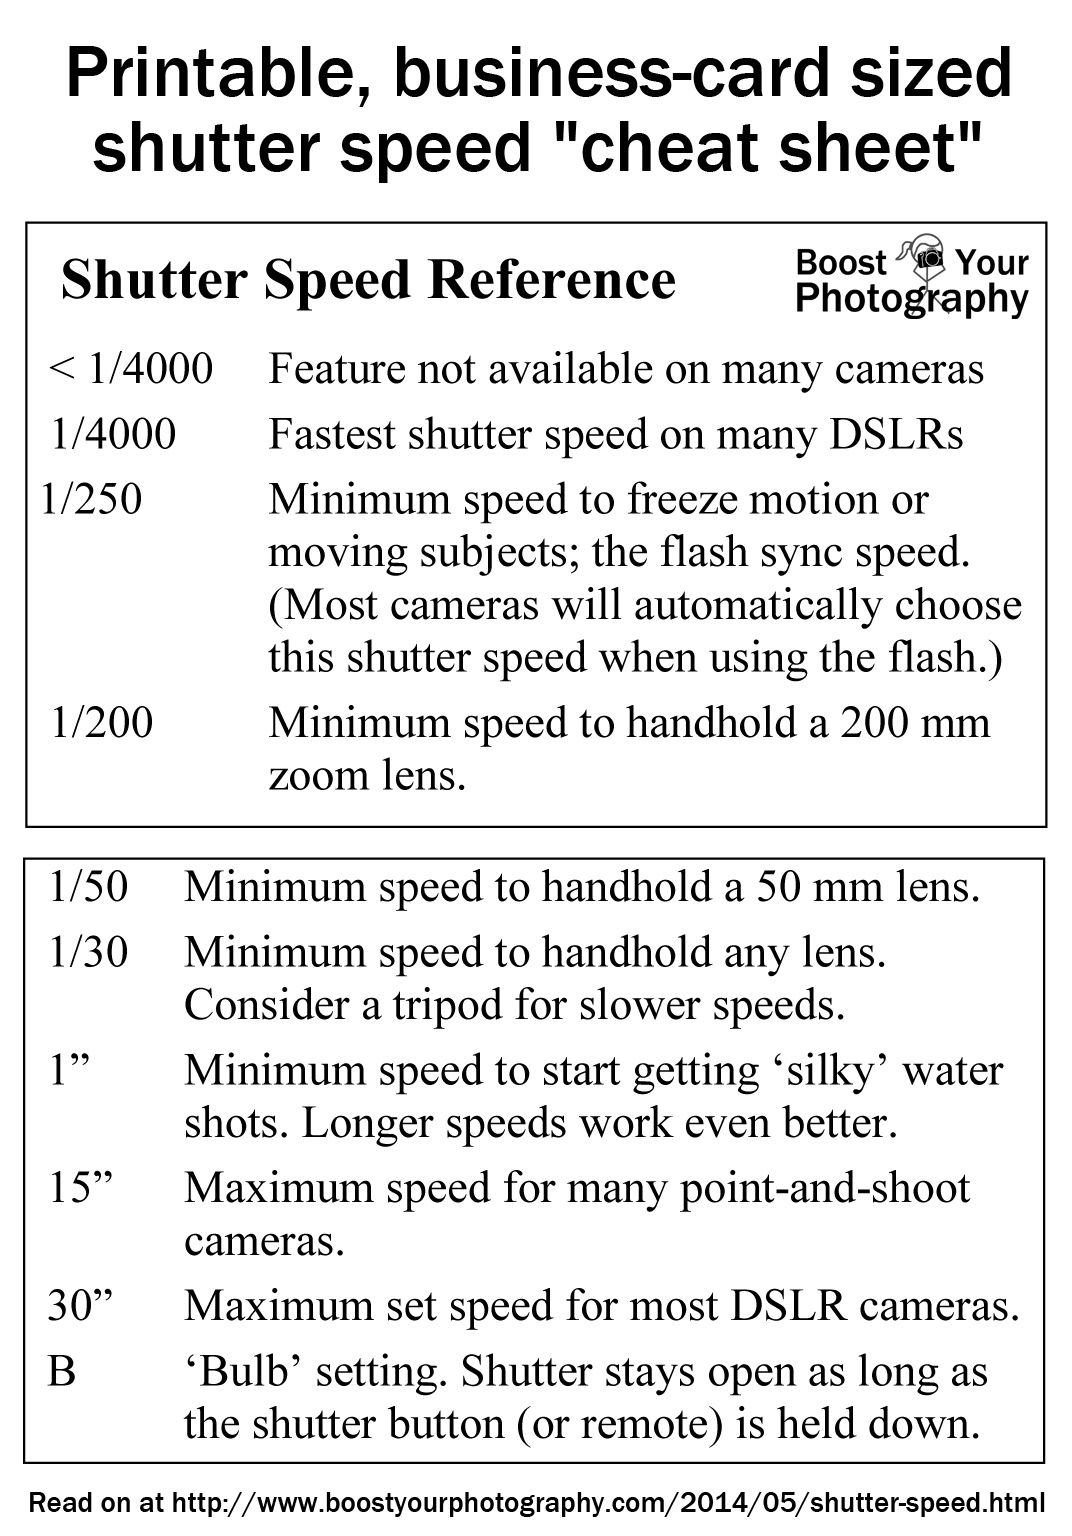 Shutter speed guidelines photography tips gear pinterest shutter speed guidelines printable business card sized cheat sheet boost your photography byp52weeks photography shutterspeed reheart Gallery